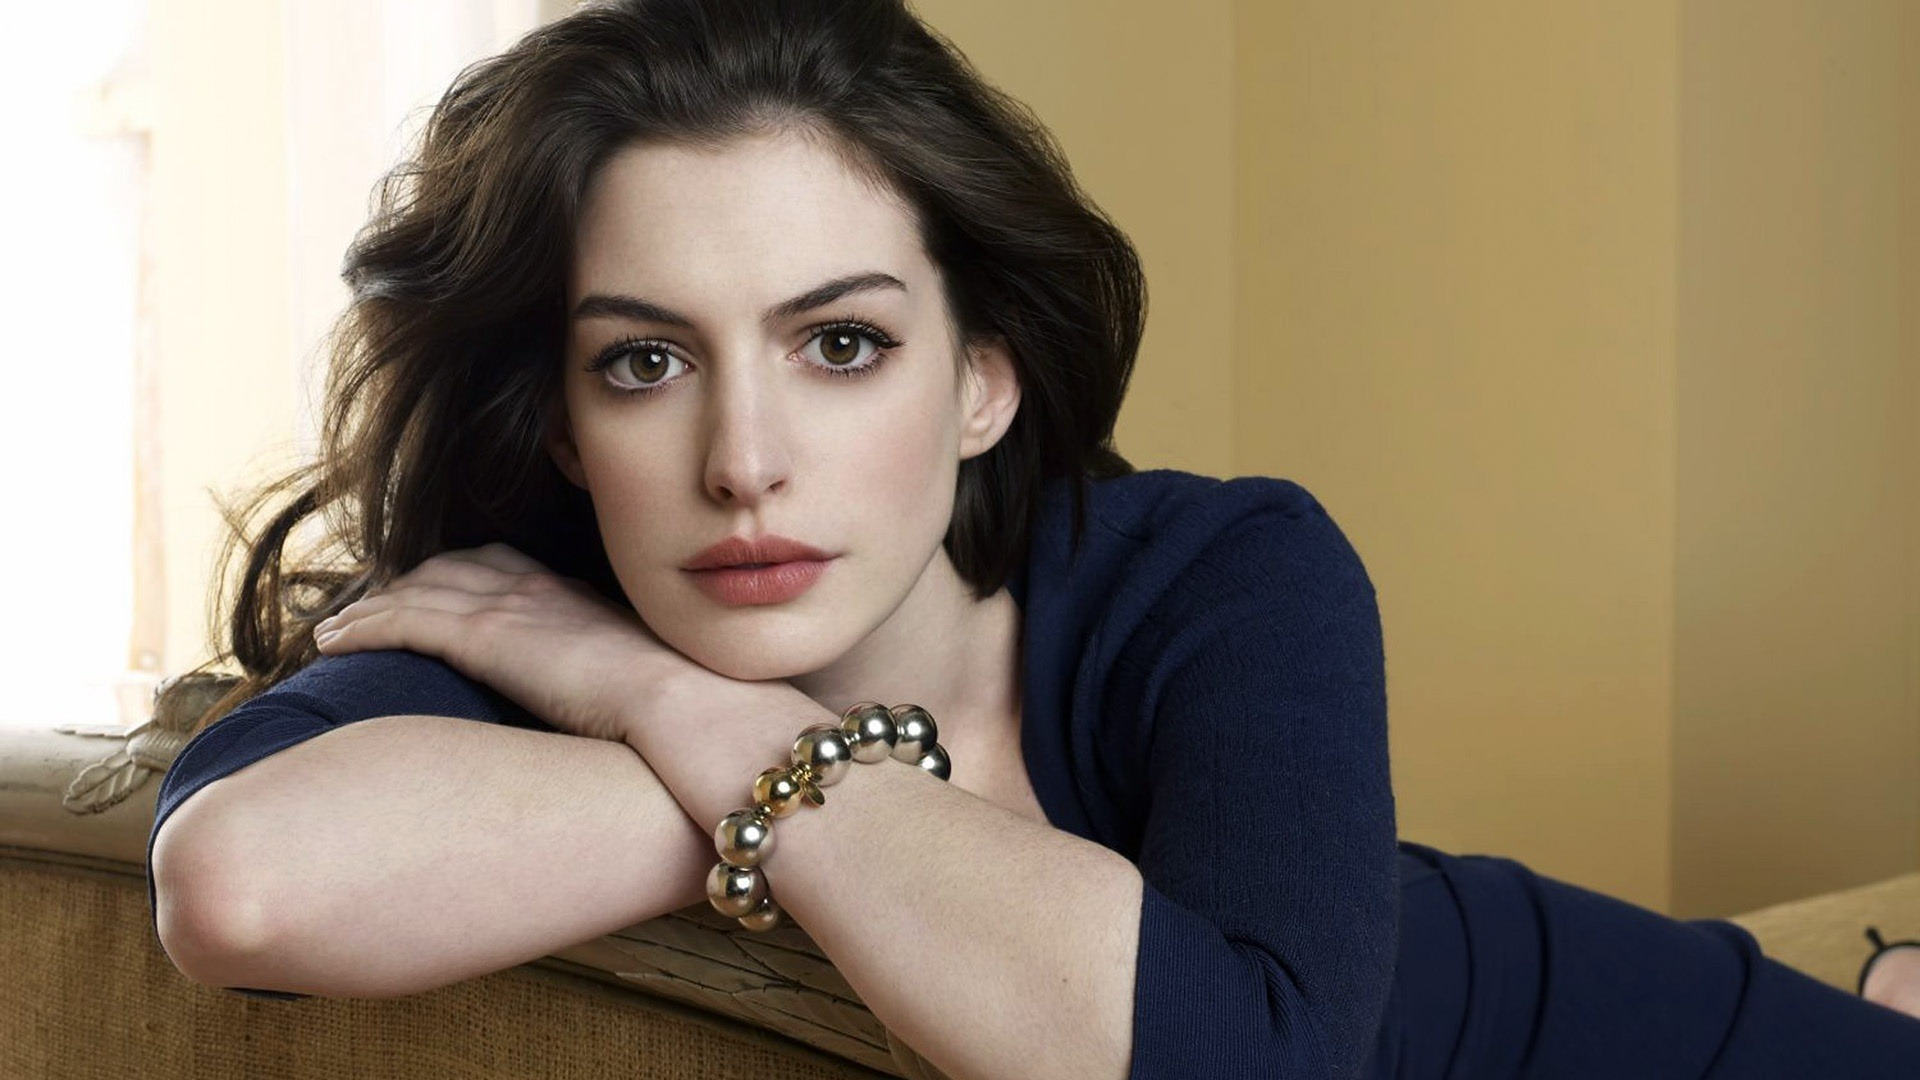 Celebrity Anne Hathaway nudes (39 photo), Ass, Hot, Selfie, cameltoe 2015